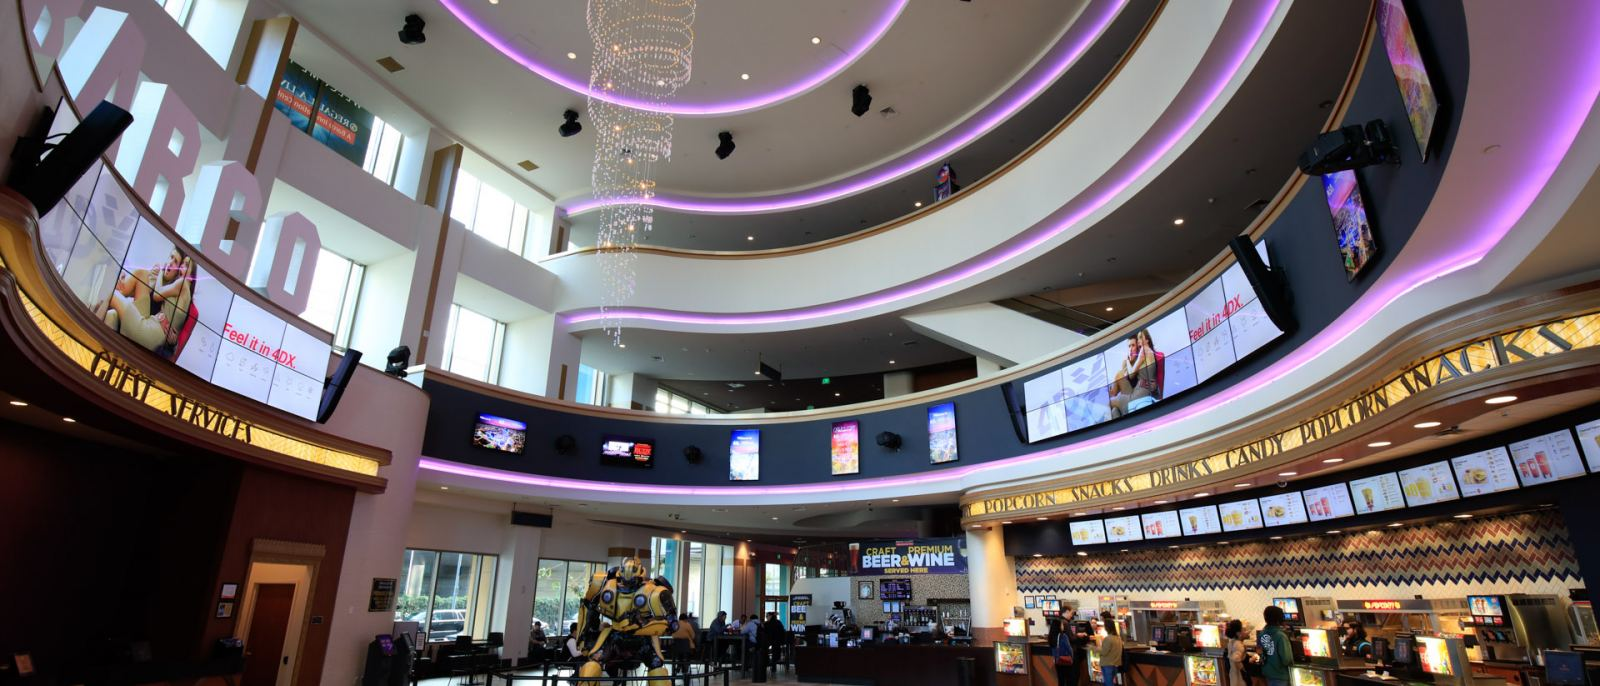 The Best Movie Theatres in Los Angeles | Discover Los Angeles